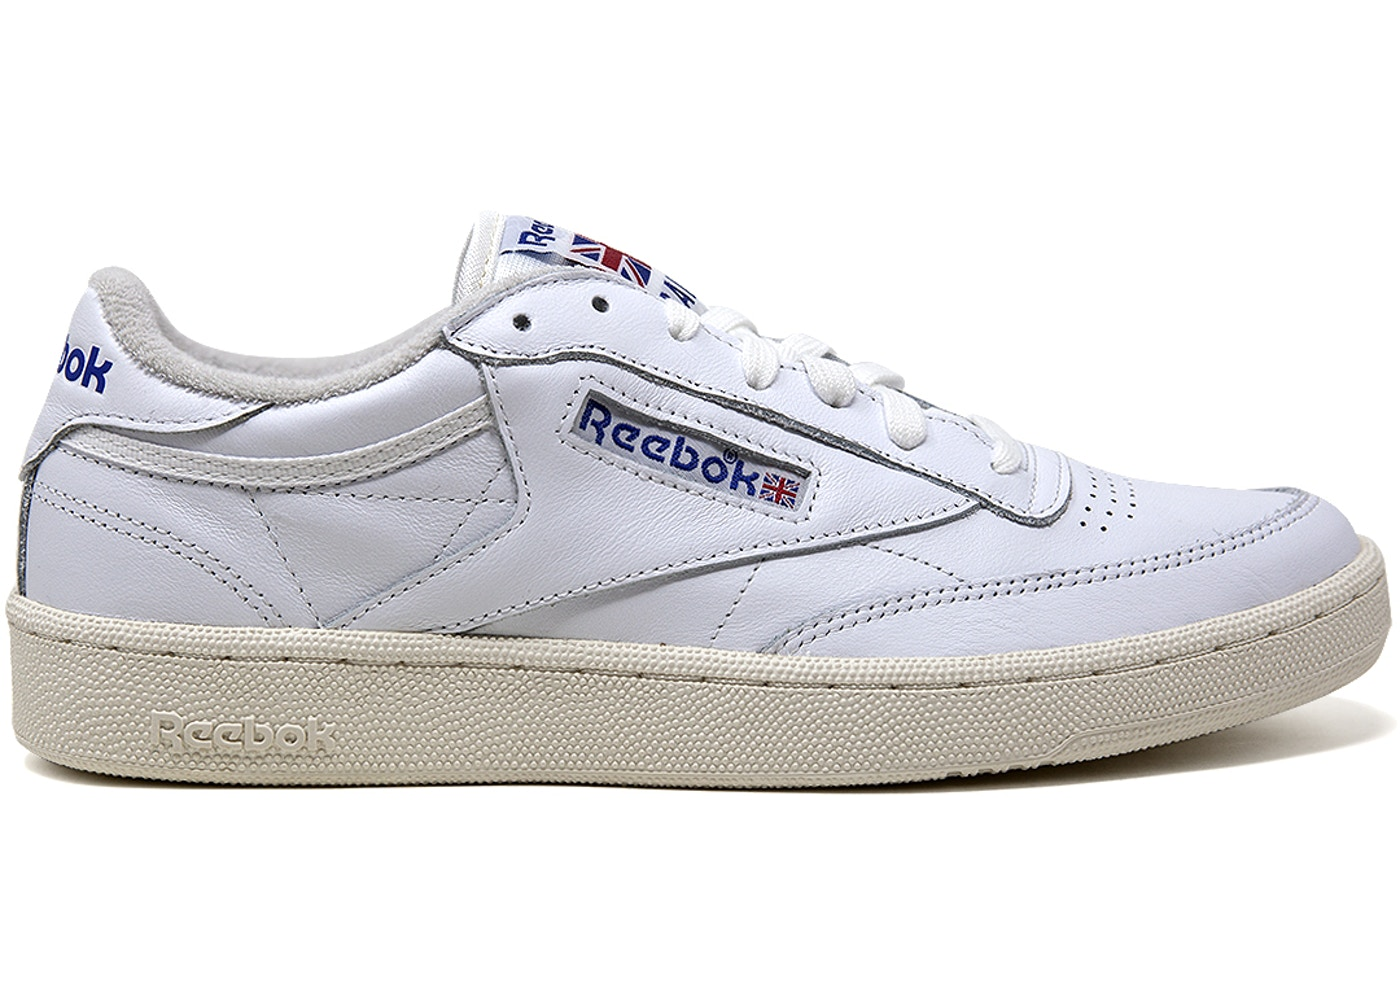 74d05b6c333 Reebok Club C Vintage Bait West East Pack - CN5884